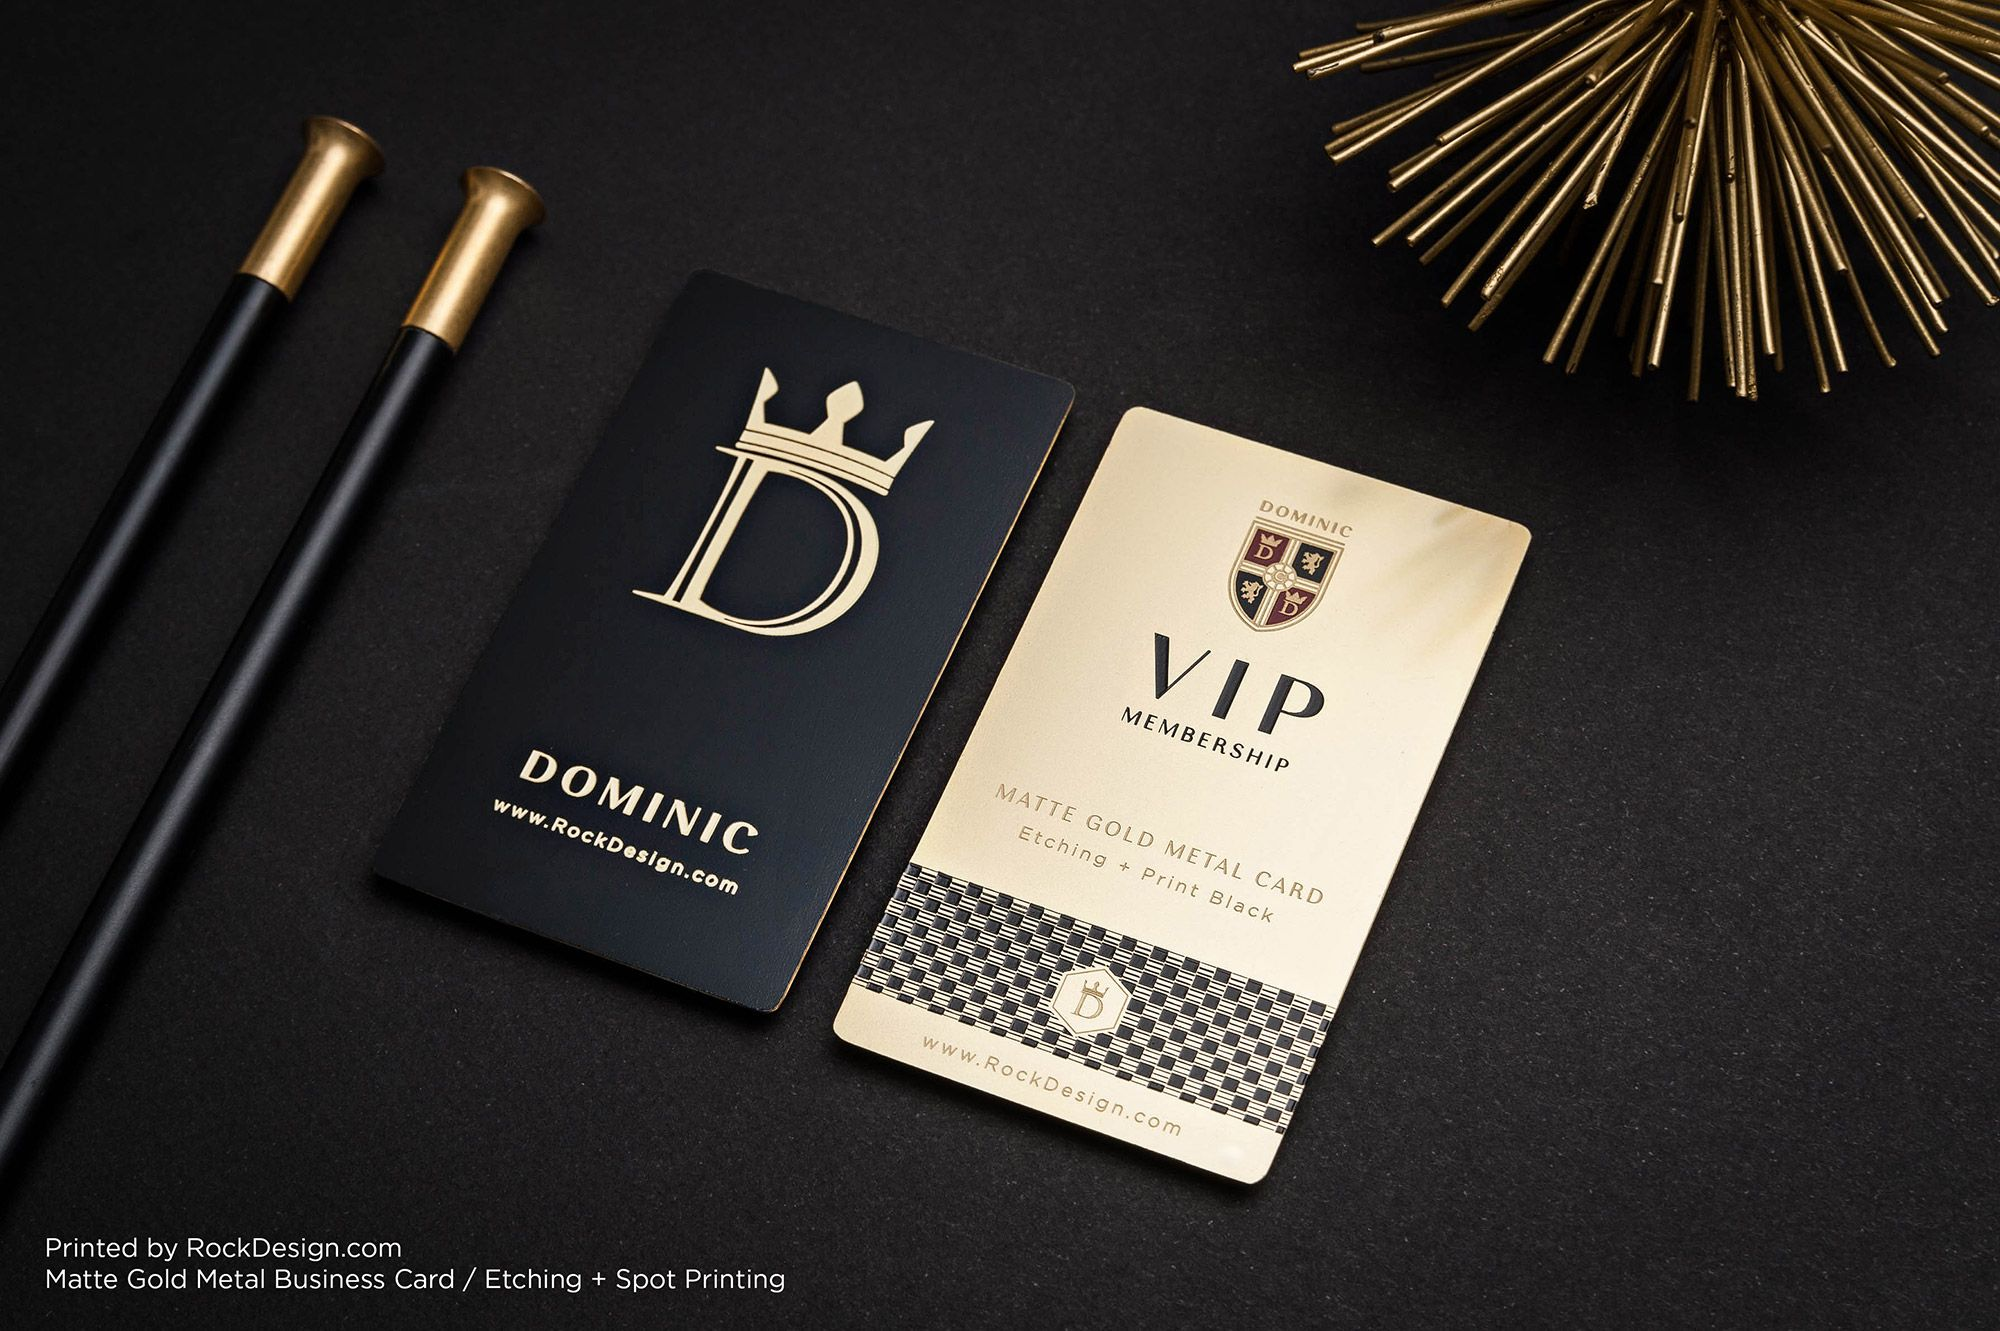 Gold metal business cards web design layouts pinterest for Business cards metal